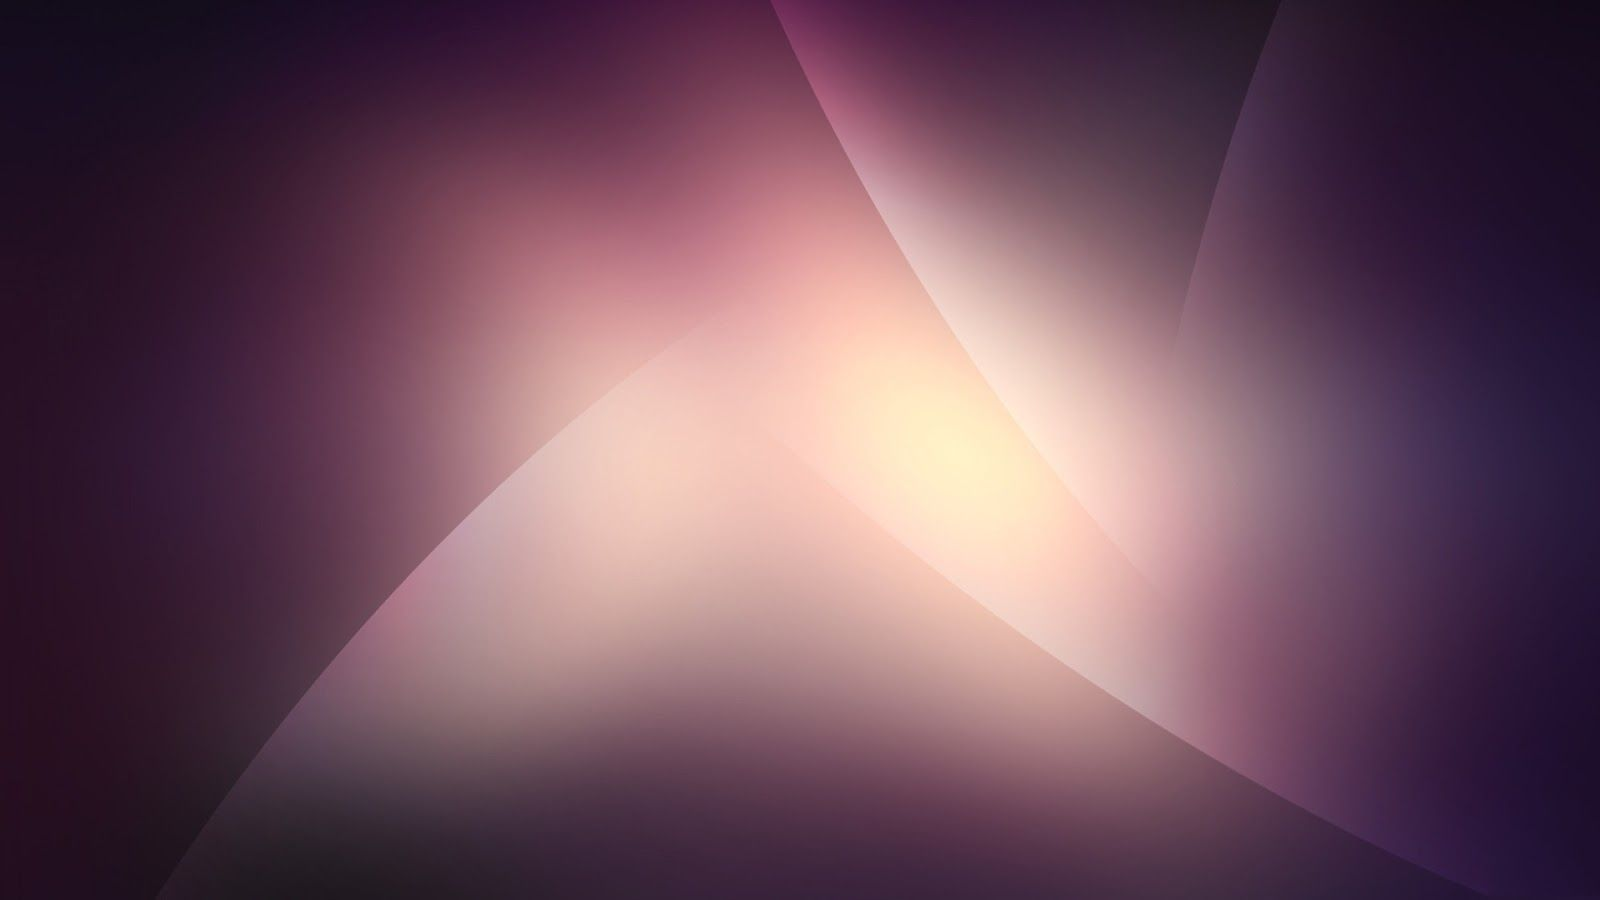 Windows 7 Theme Purple Desktop Wallpapers And Backgrounds 8k Wallpaper Abstract Wallpaper Windows 7 Themes